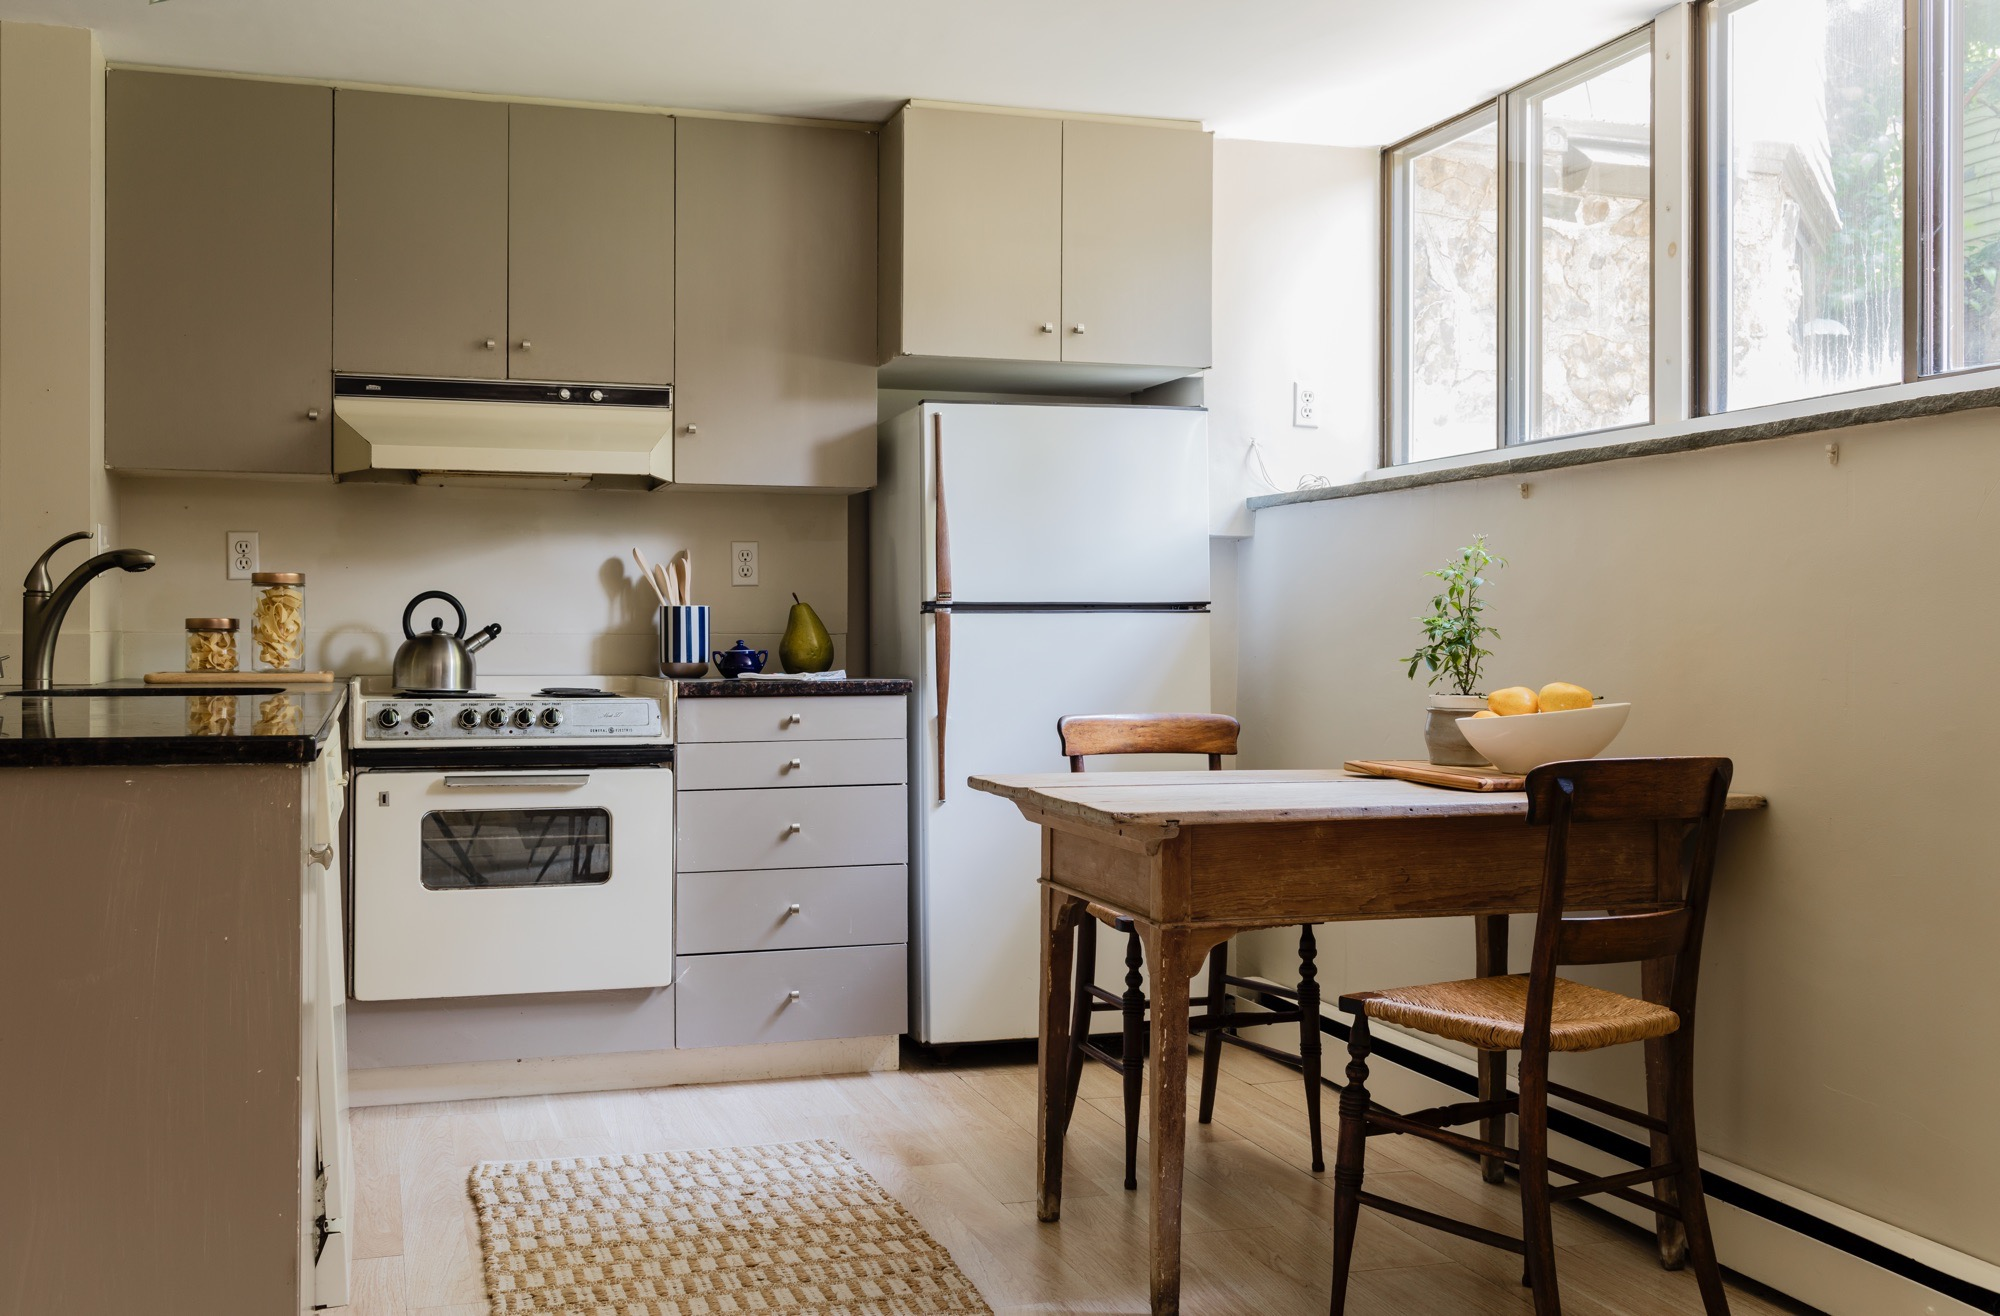 44AH apartment kitchen.jpg